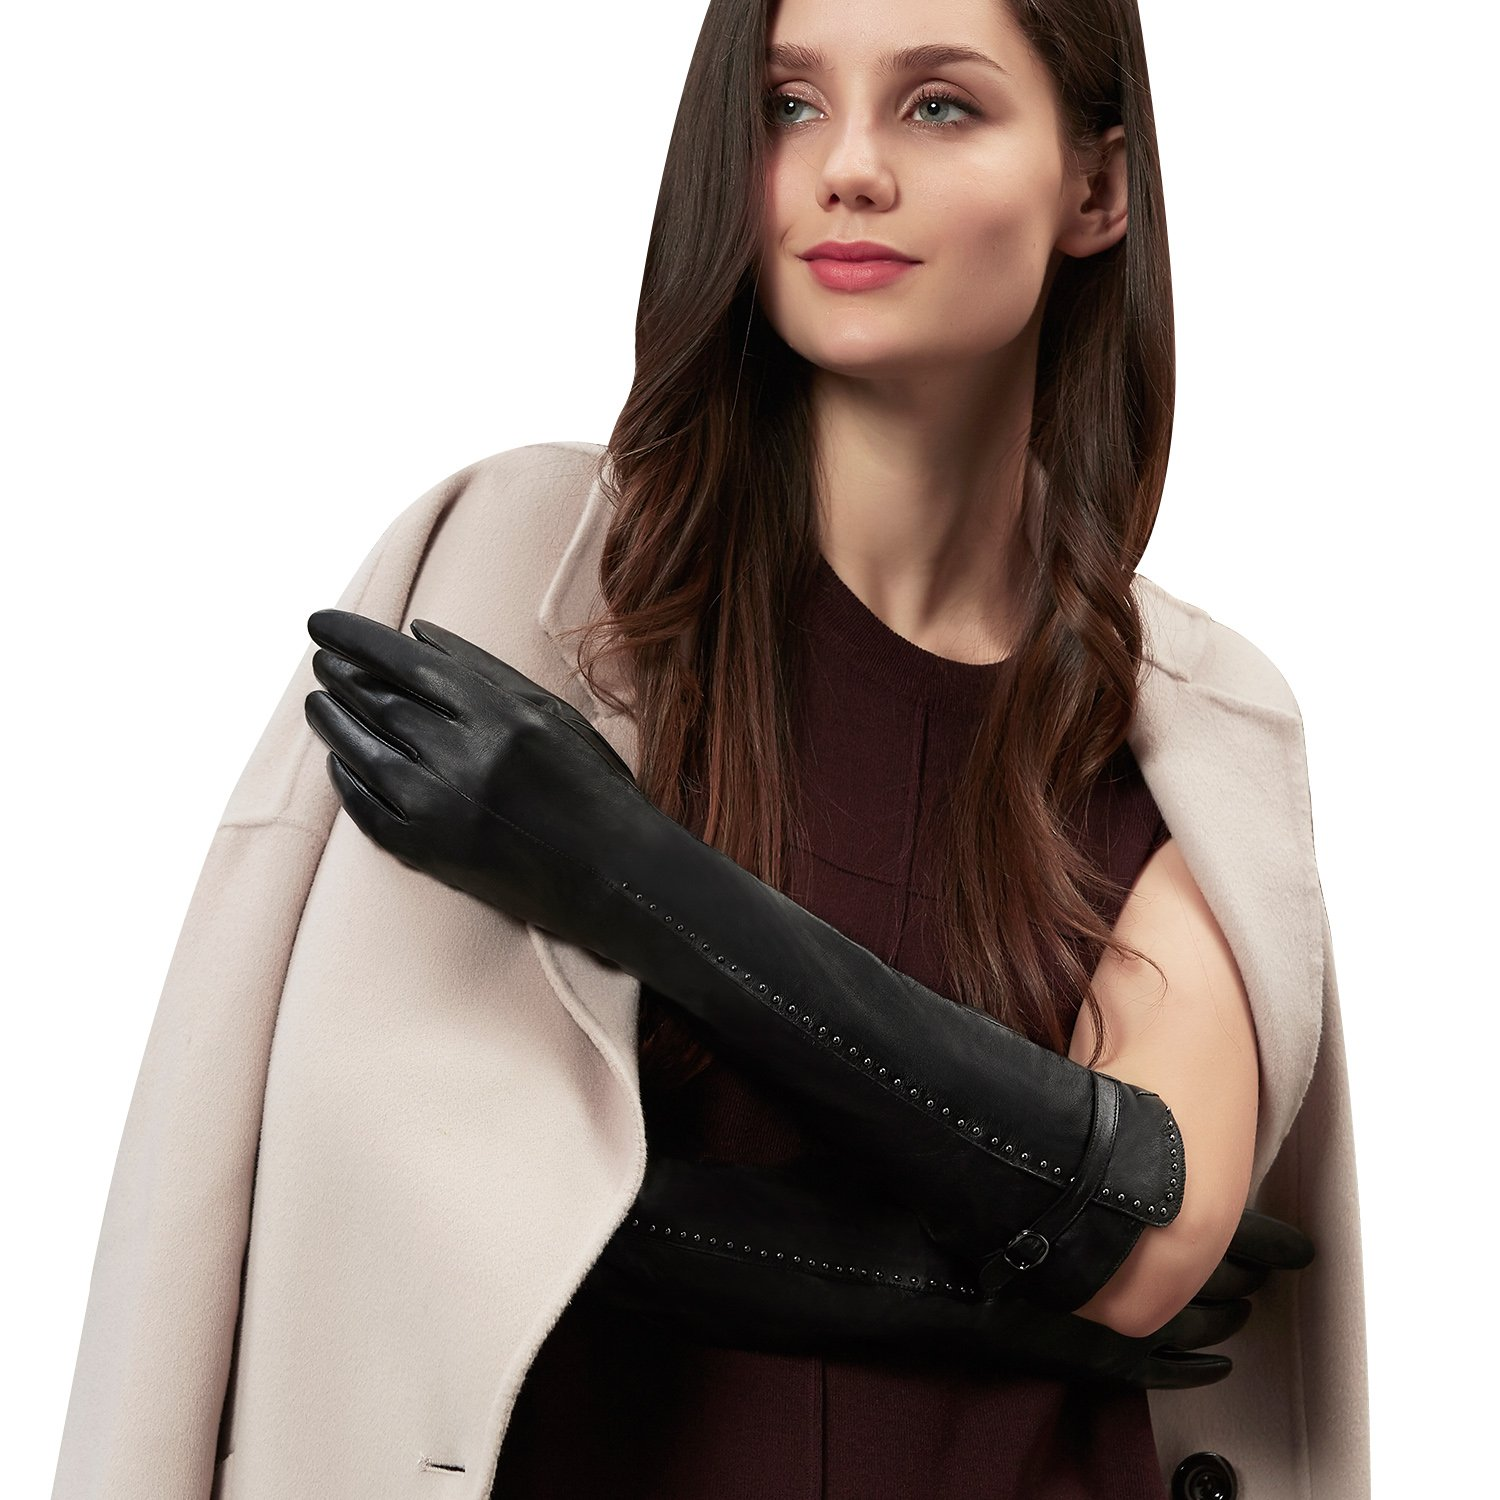 GSG Womens Stylish Studs Decor Elbow Gloves Genuine Leather Arm Warmer Gloves Ladies Evening Party Dress Gloves Nice Gifts Black 7